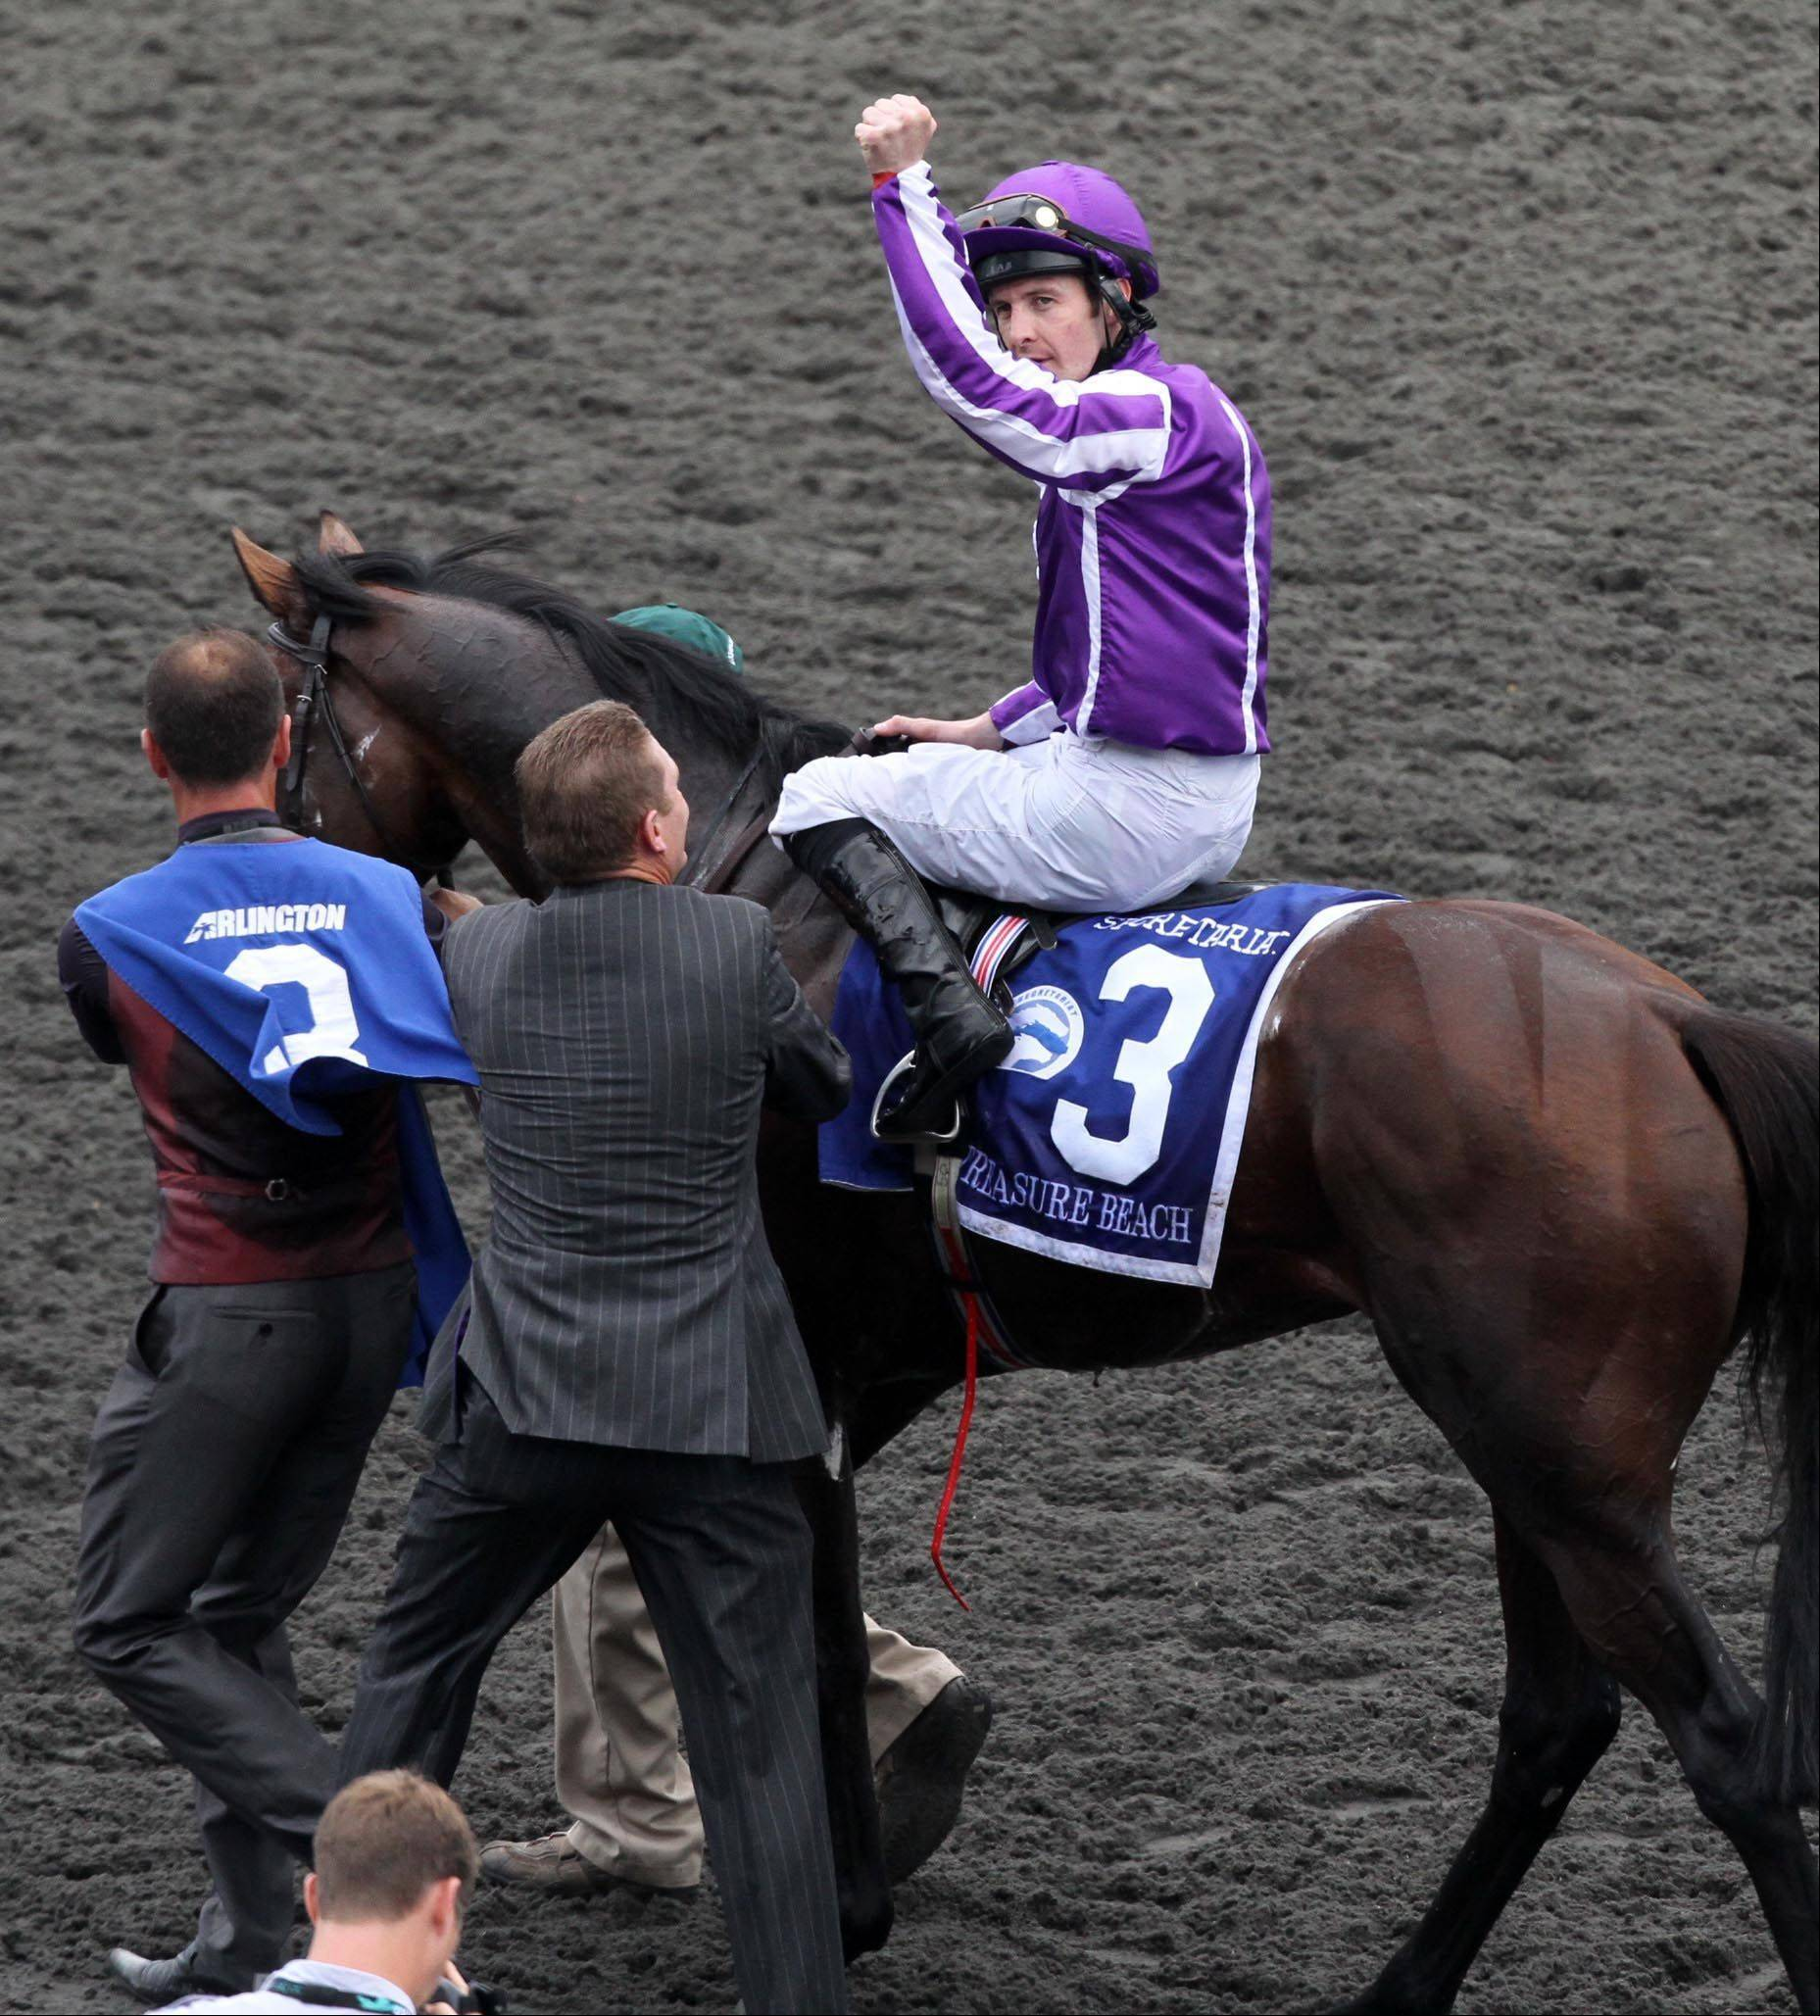 Colm O'Donoghue, aboard Treasure Beach, celebrates victory in the Secretariat Stakes at Arlington Park on Saturday.